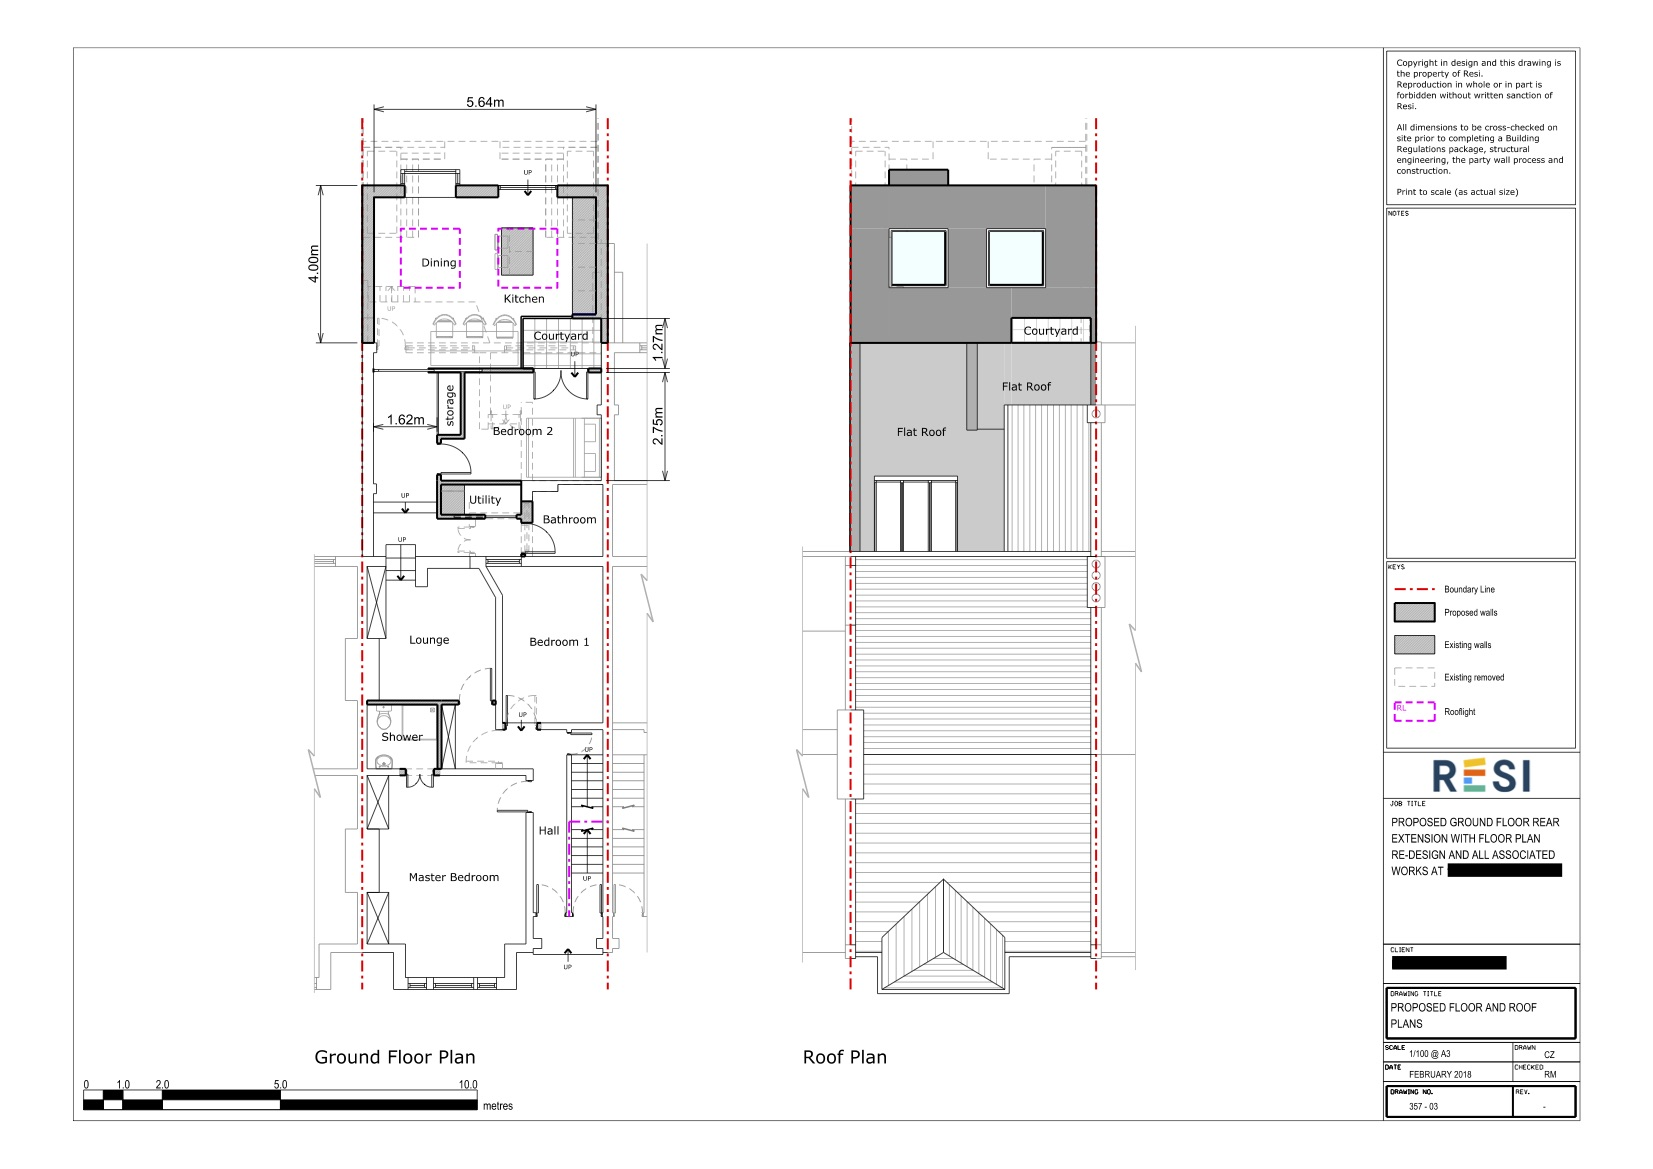 Architectural drawings rev a 2   gf and roof plans